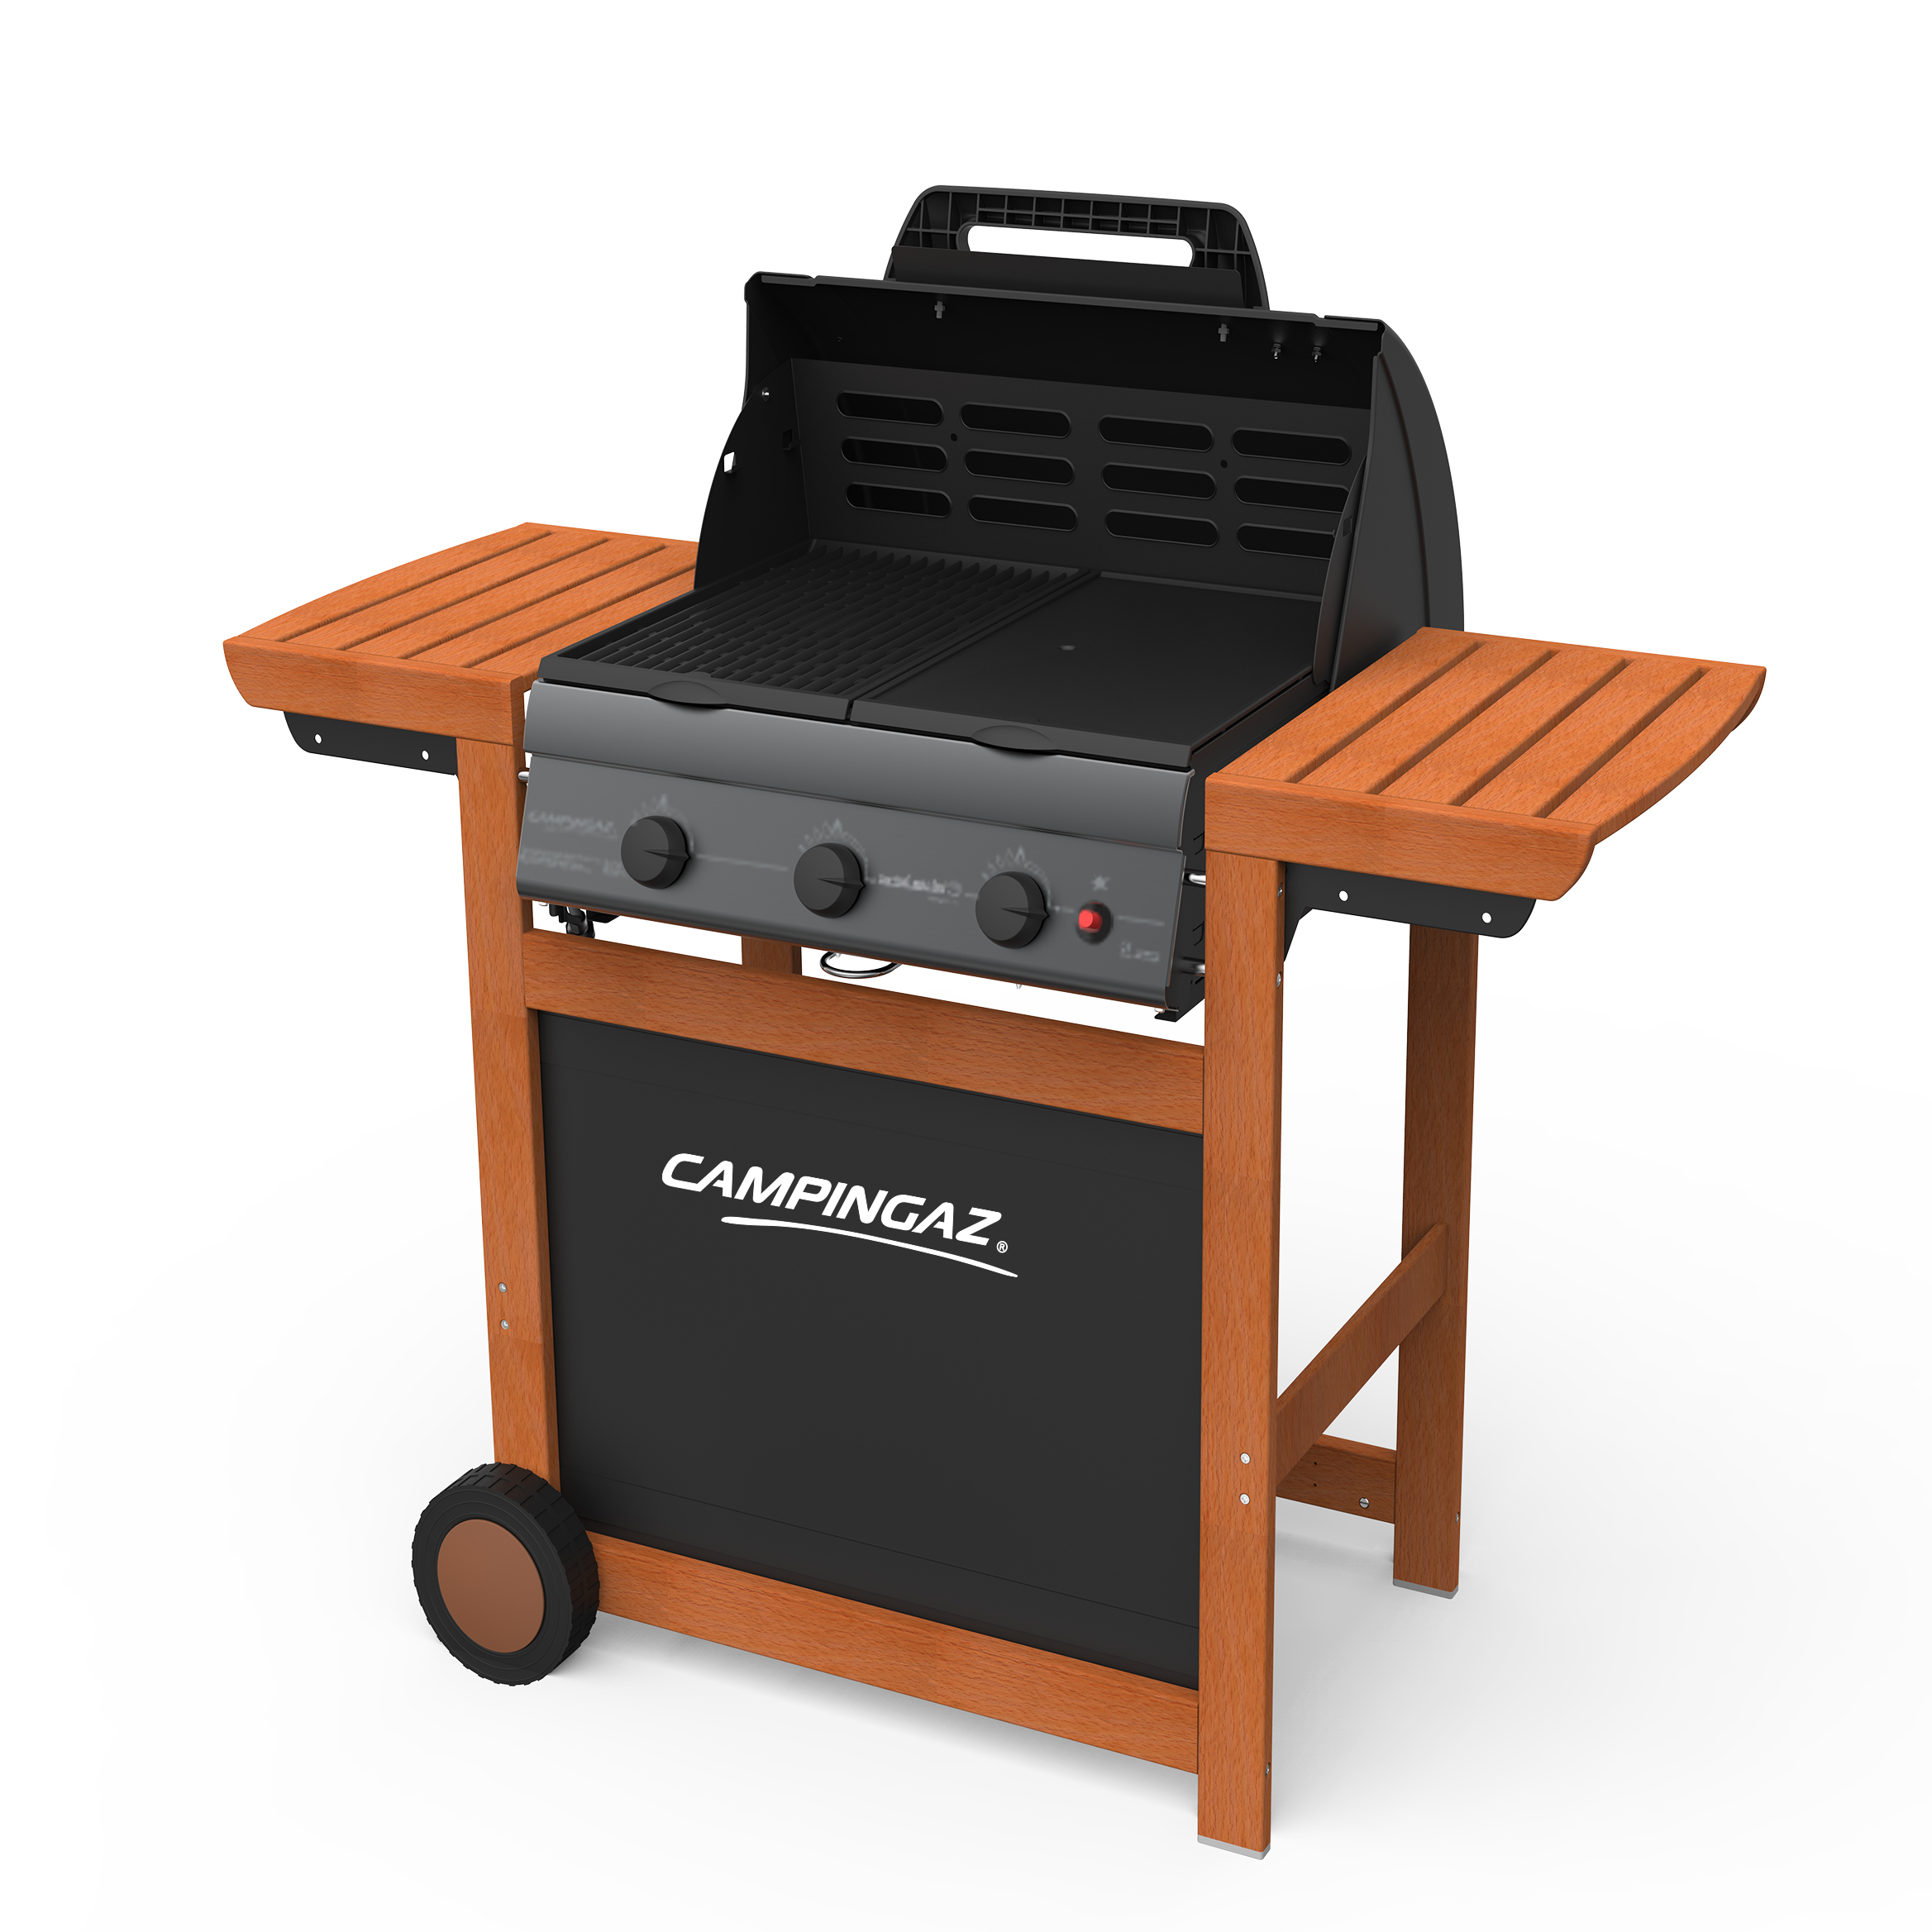 campingaz gasgrill adelaide 3 woody l bbq grillwagen aus holz mit 3 gusseisen brennern deckel. Black Bedroom Furniture Sets. Home Design Ideas